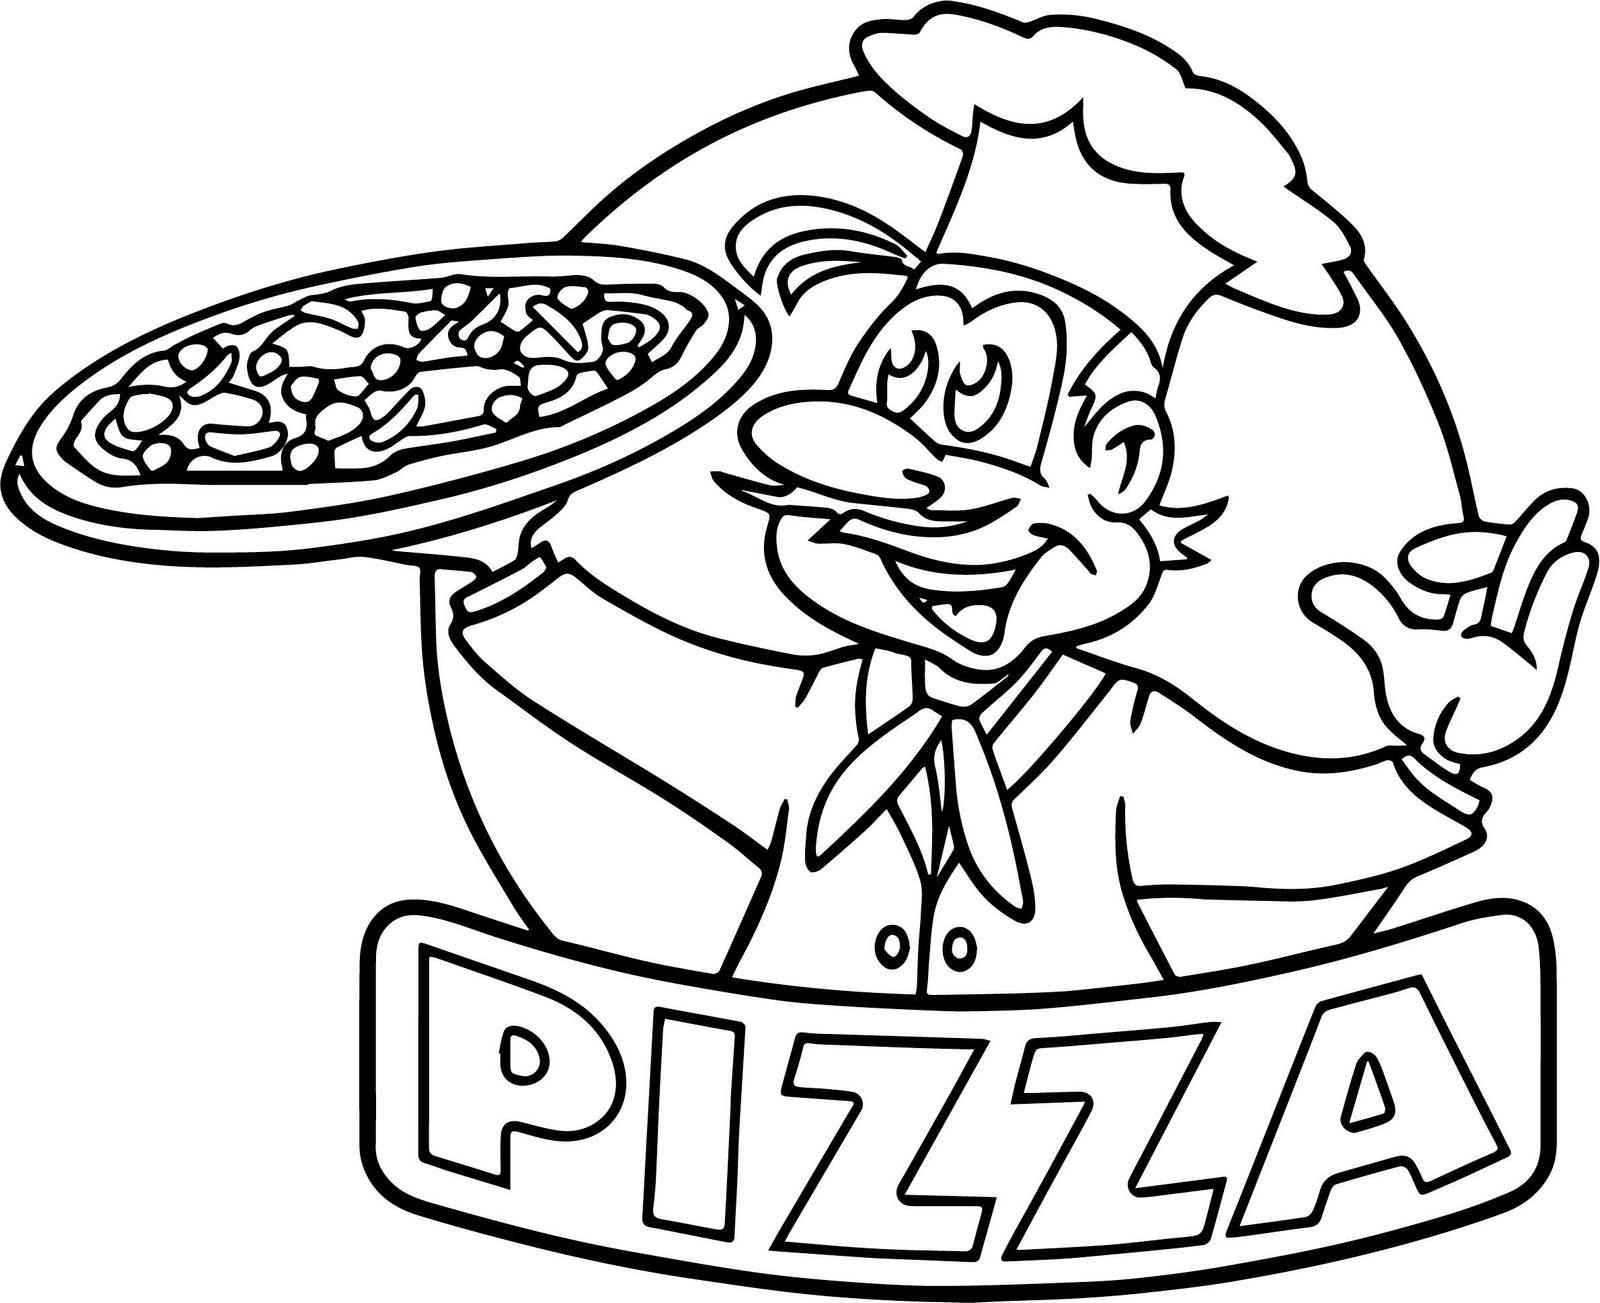 Pizza Restaurant Logo Coloring Page